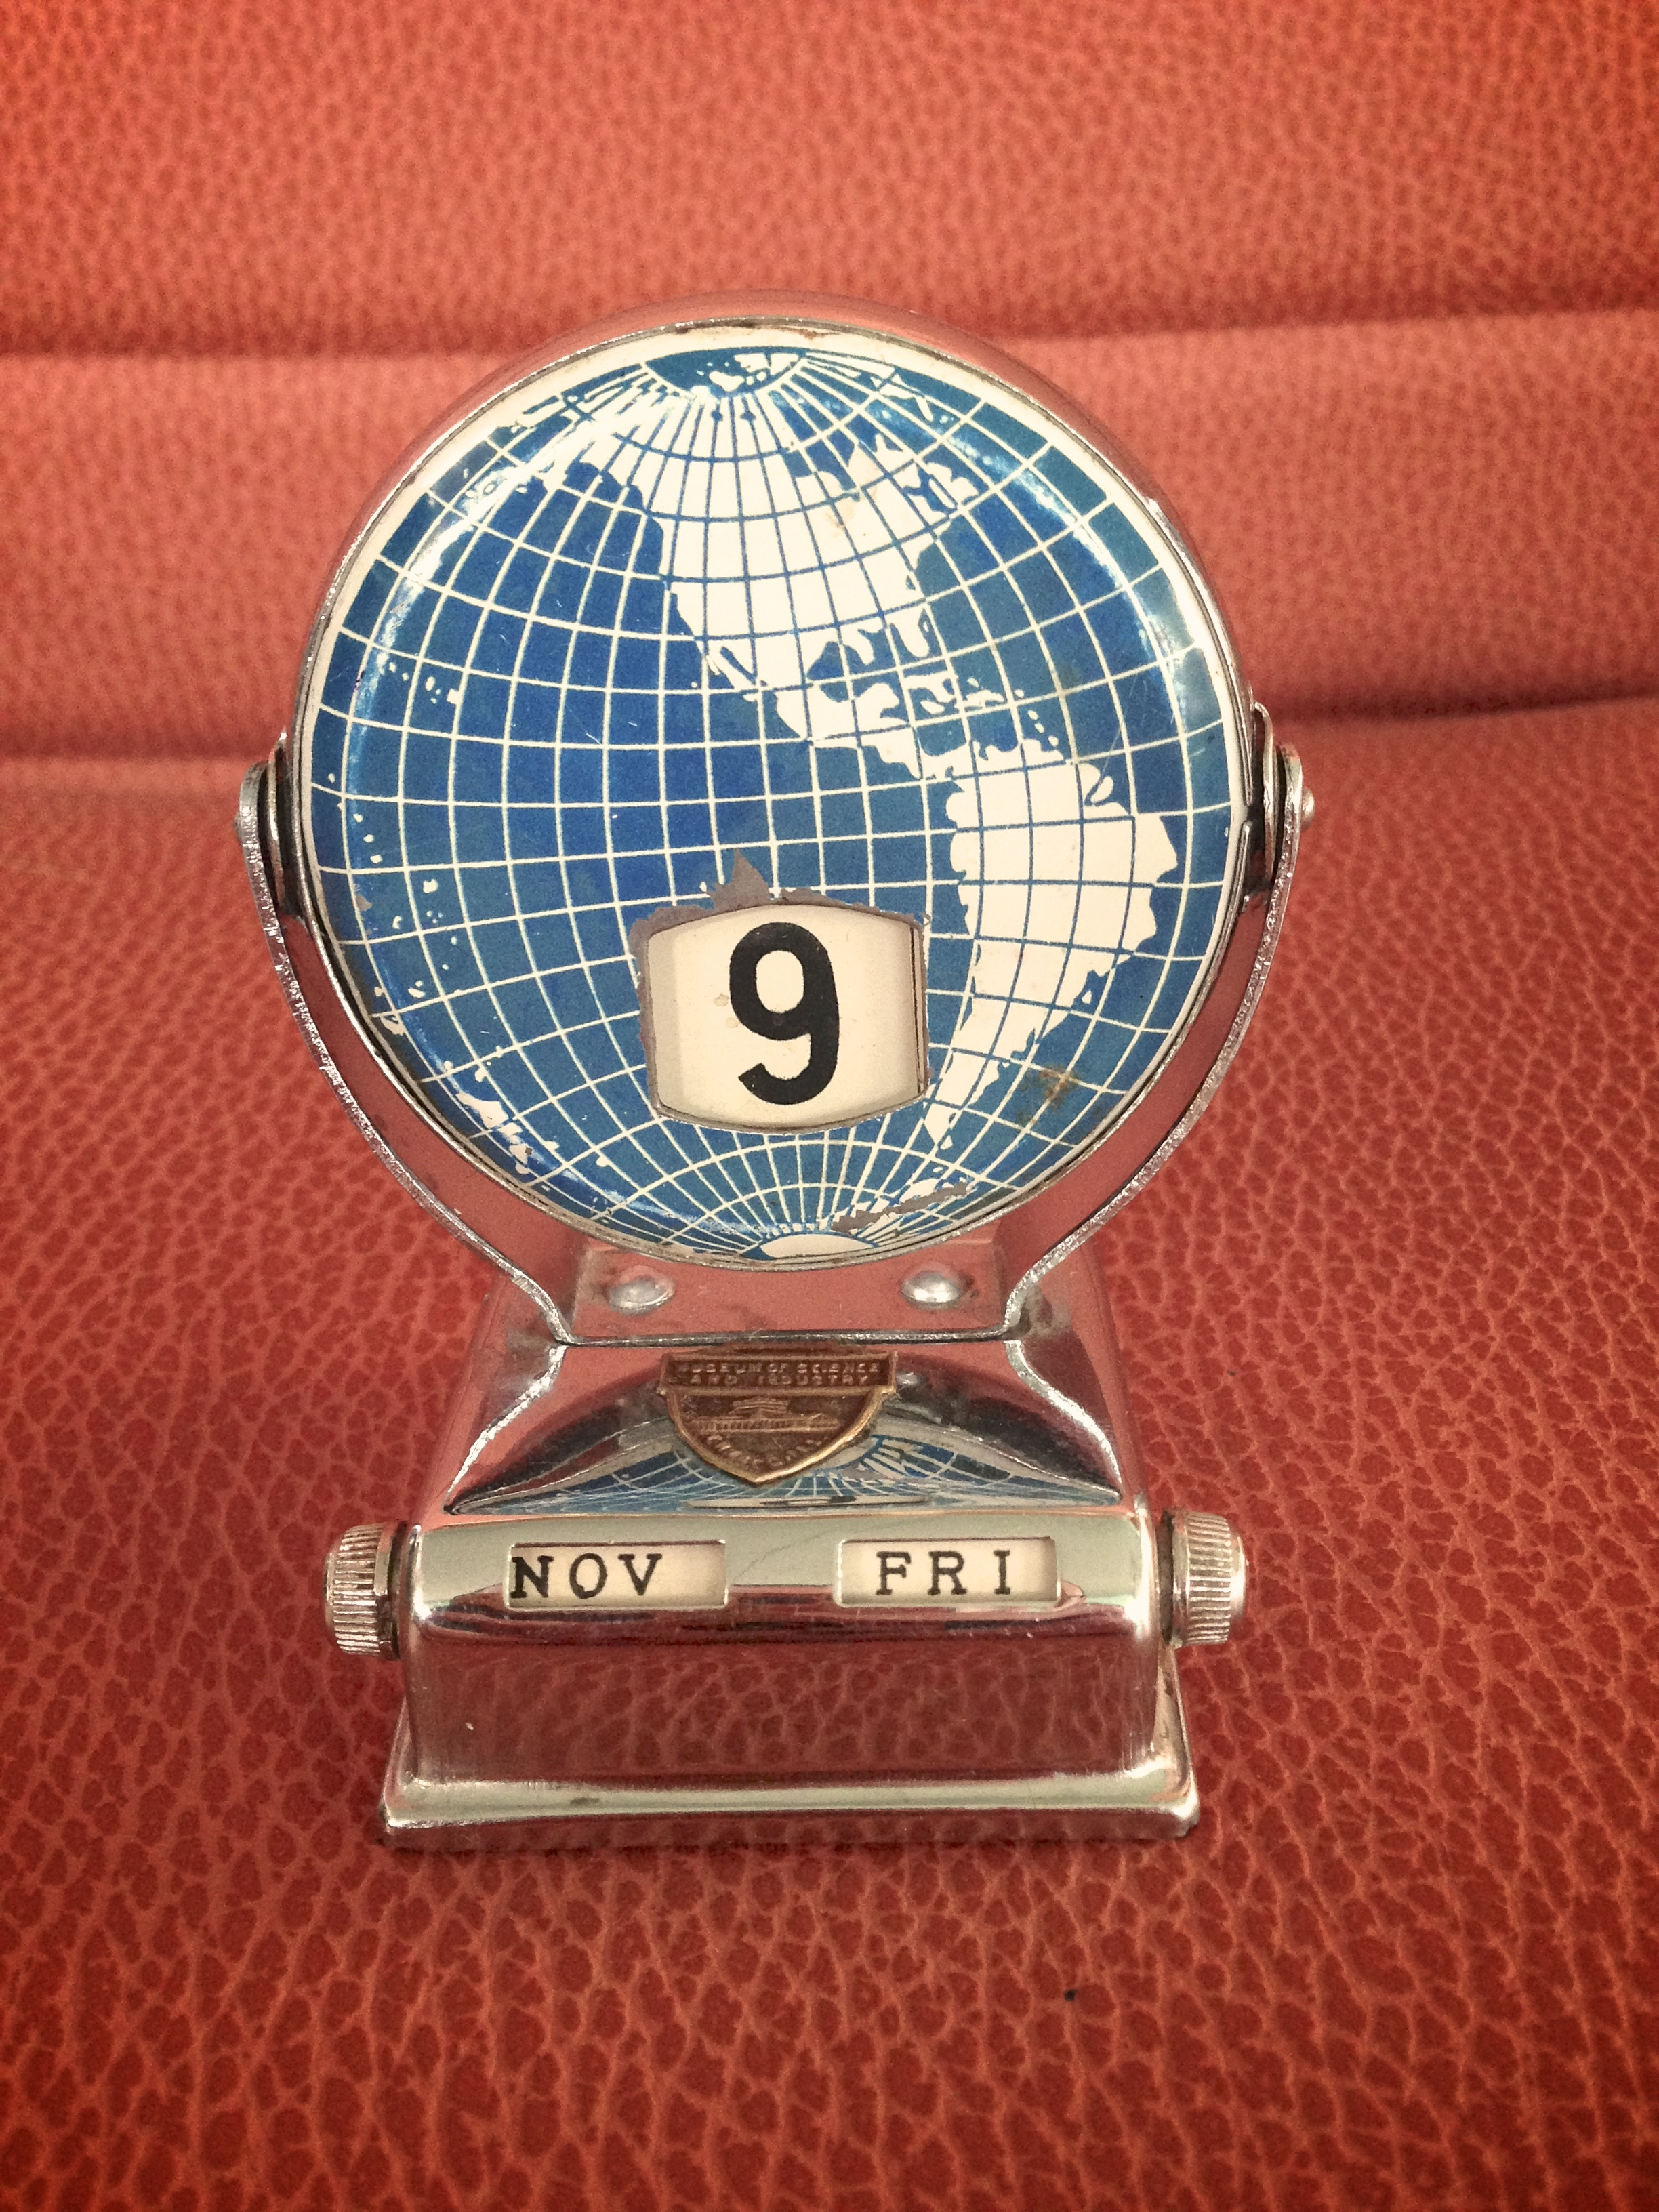 Vintage Perpetual Filp Calendar The Well Appointed Desk